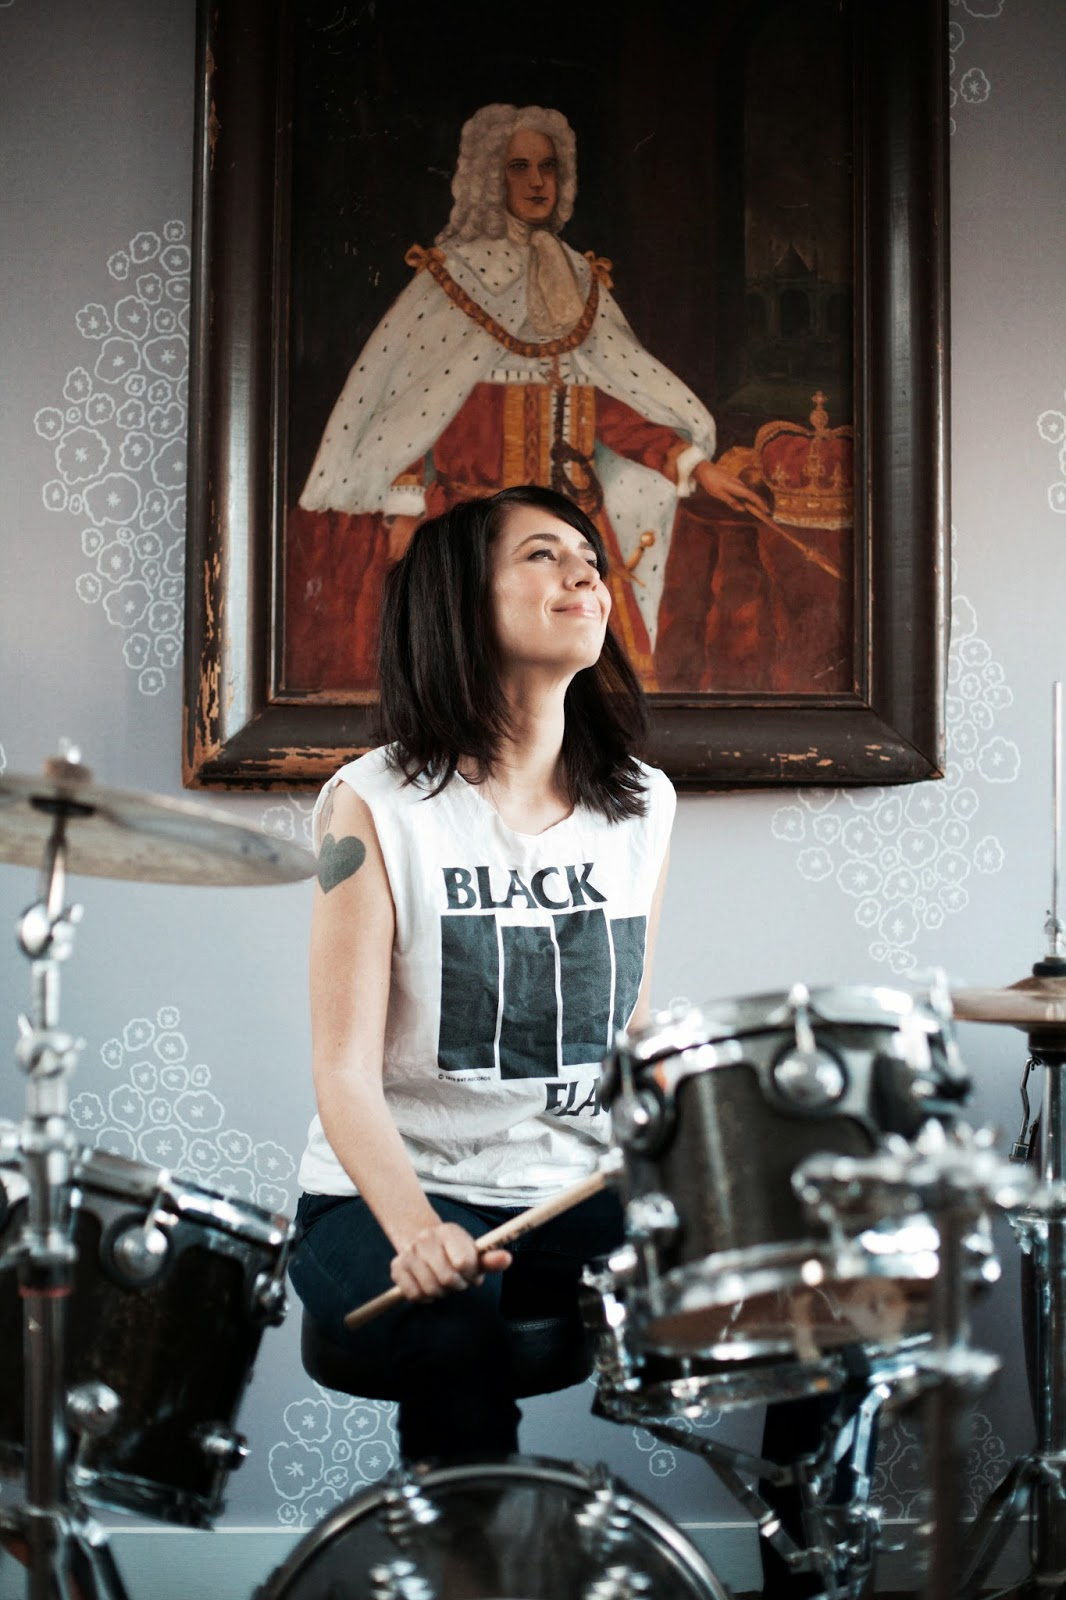 Kathleen Hanna from A Punk Singer on the Drums